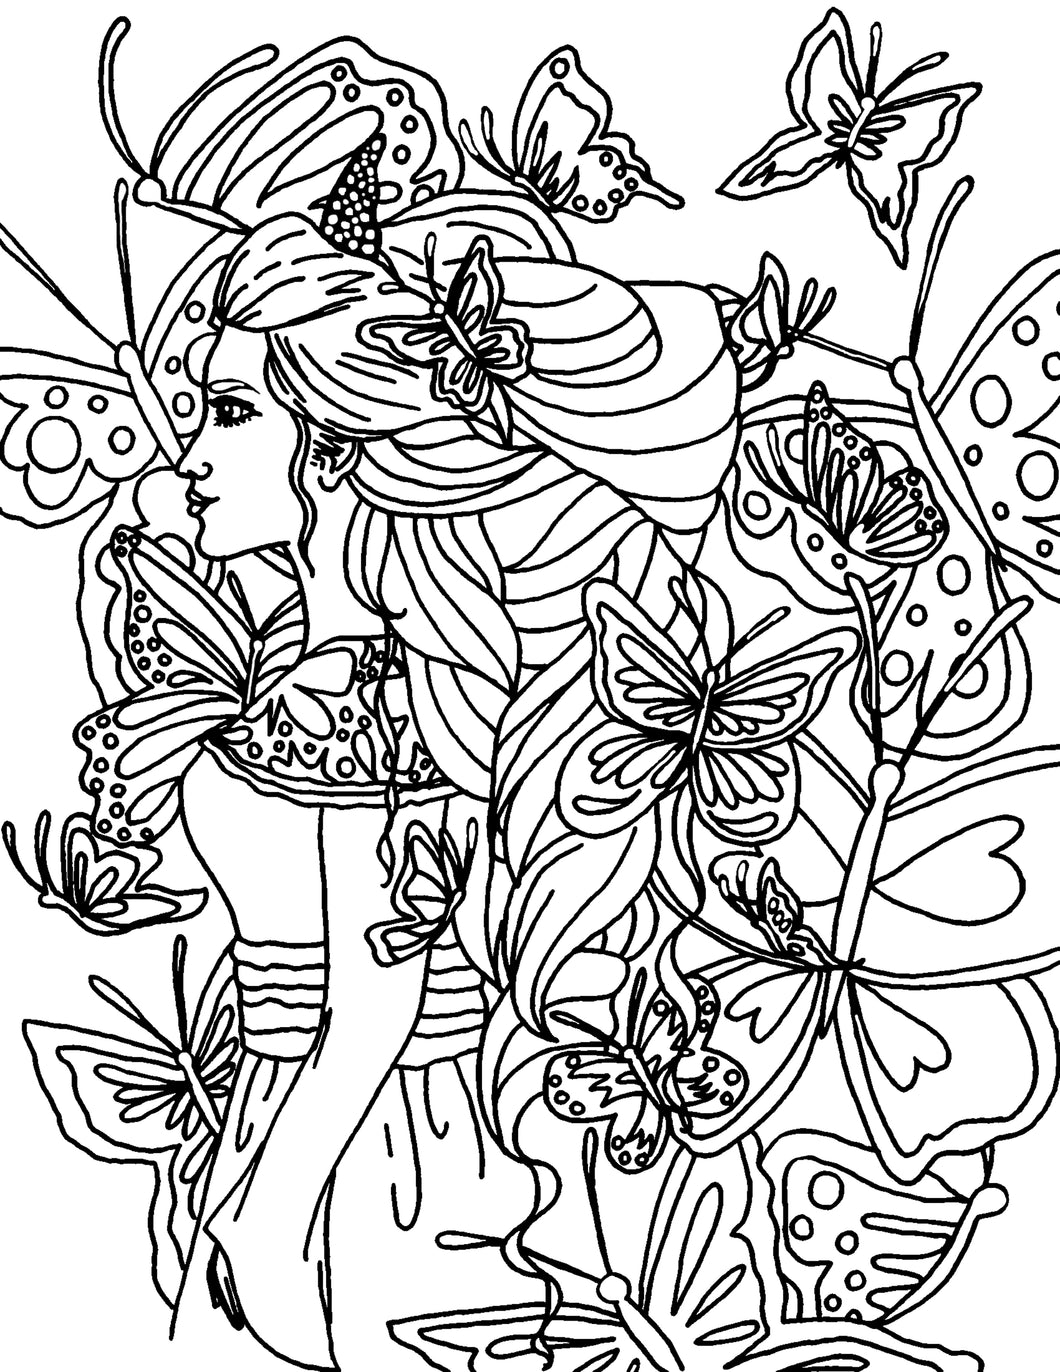 I'll Fly Away Coloring Page